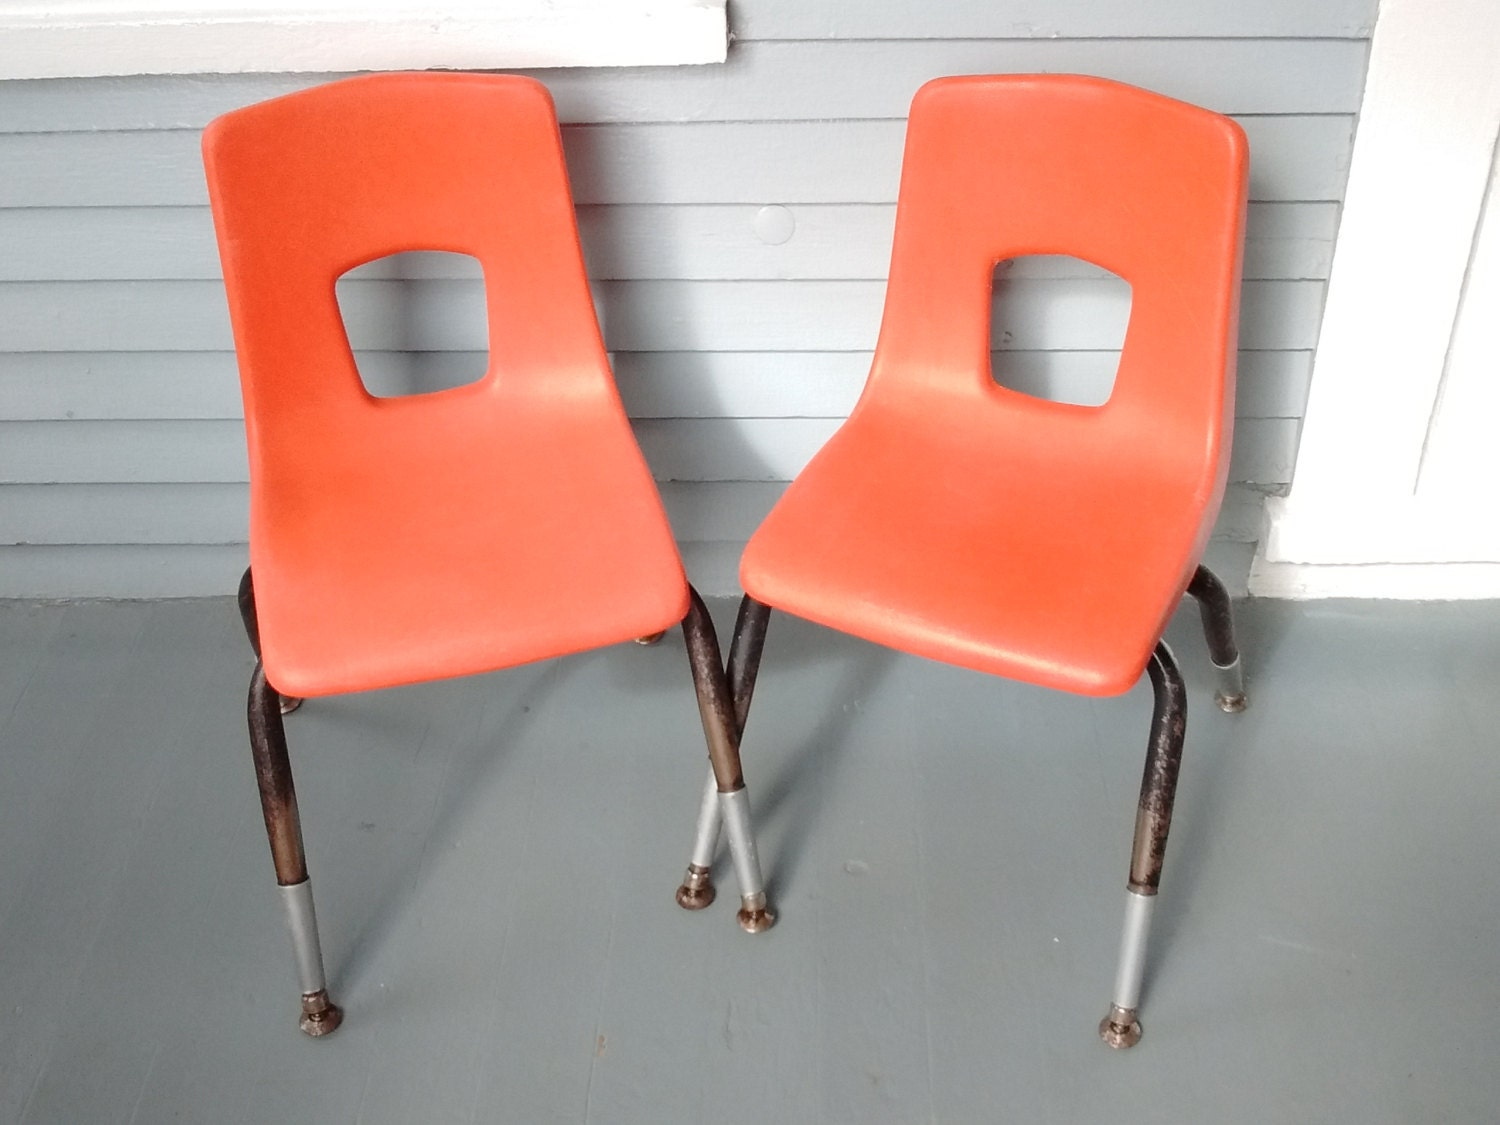 Vintage kids chairs shell chairs stacking chairs kids for Orange kids chair